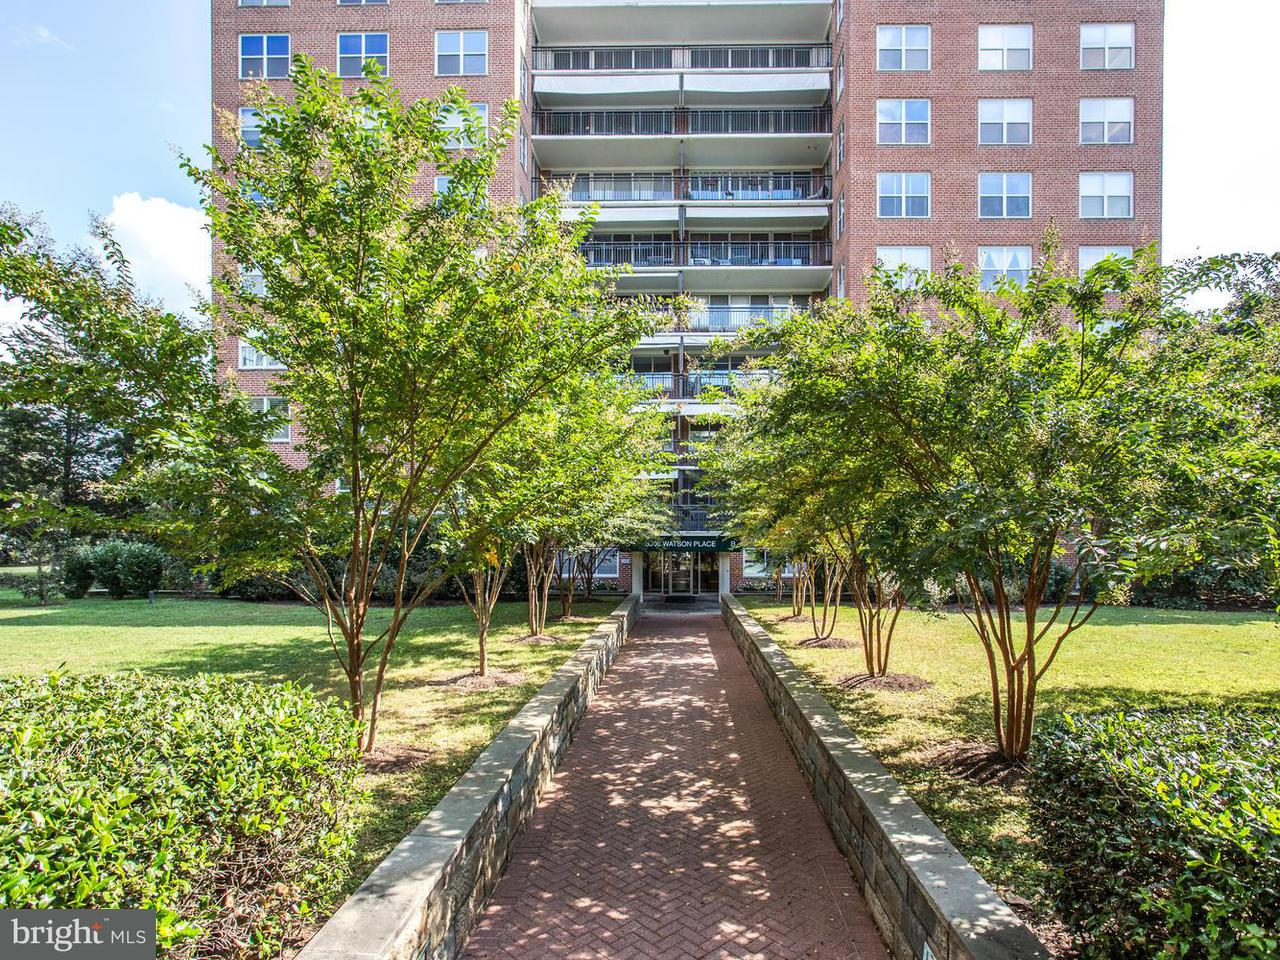 Condominium for Sale at 3900 Watson Pl Nw #8d/E 3900 Watson Pl Nw #8d/E Washington, District Of Columbia 20016 United States